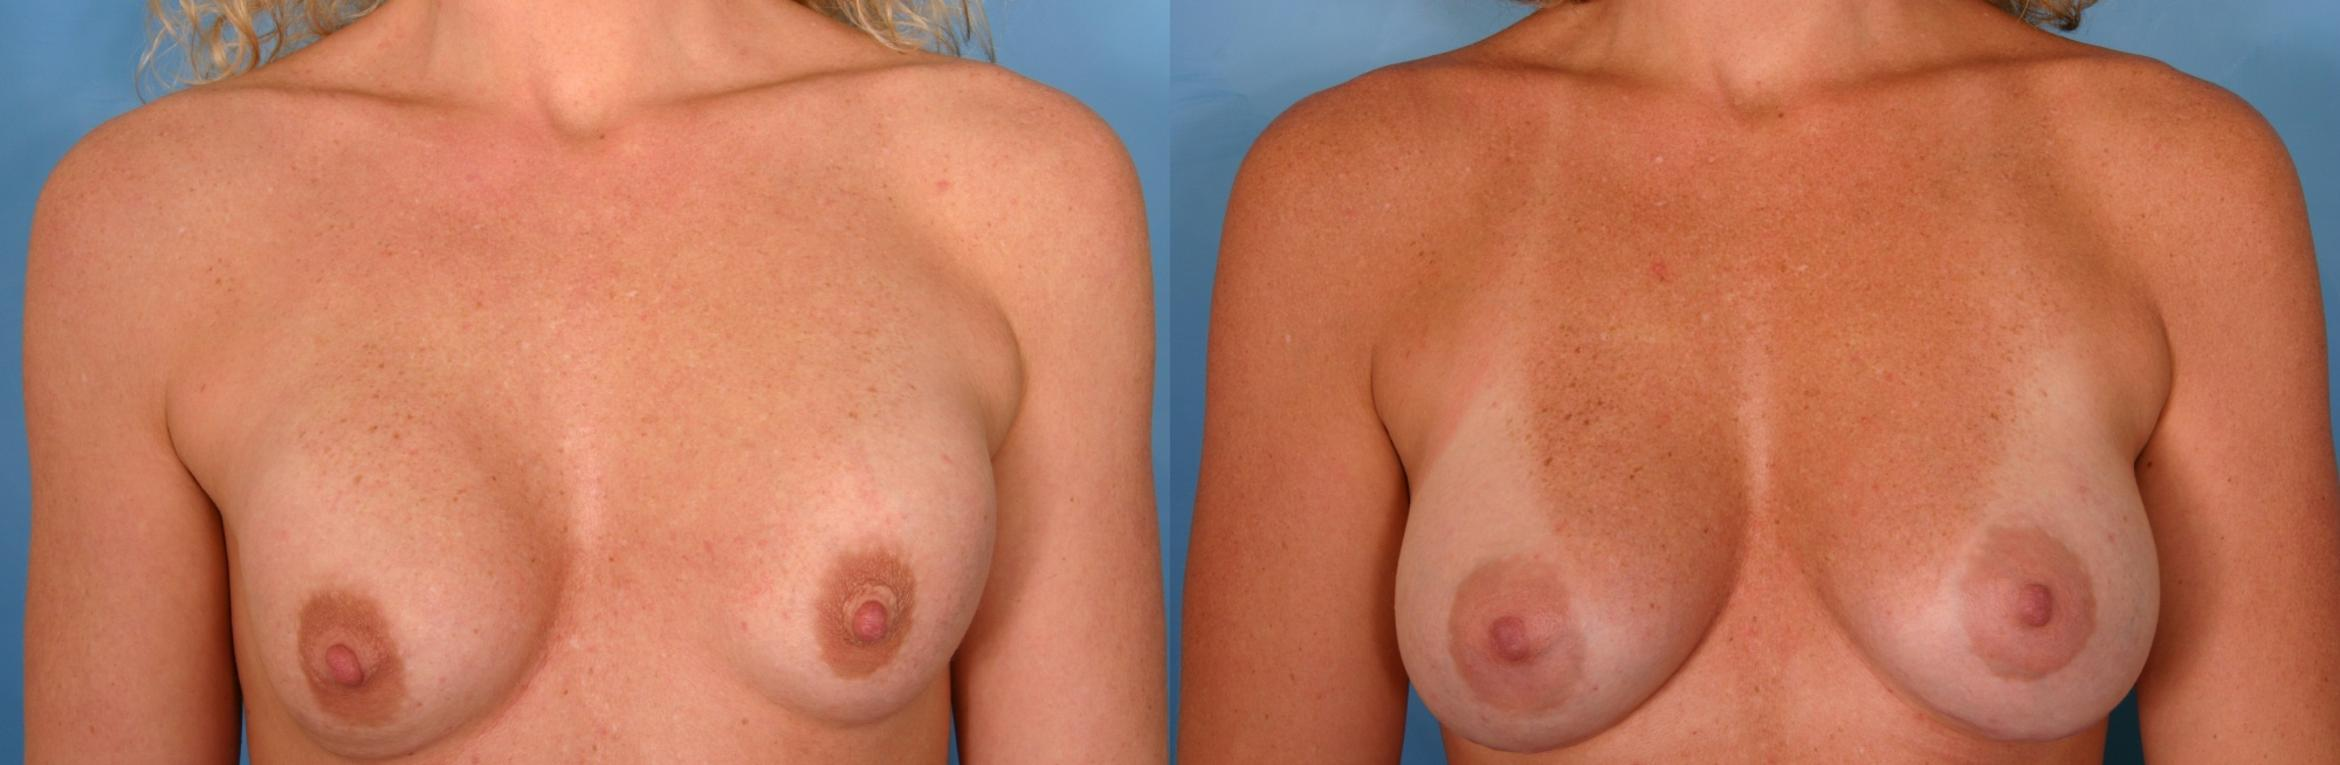 Breast Implant Exchange/Revision Case 31 Before & After View #1 | Naples, FL | Kent V. Hasen, M.D.